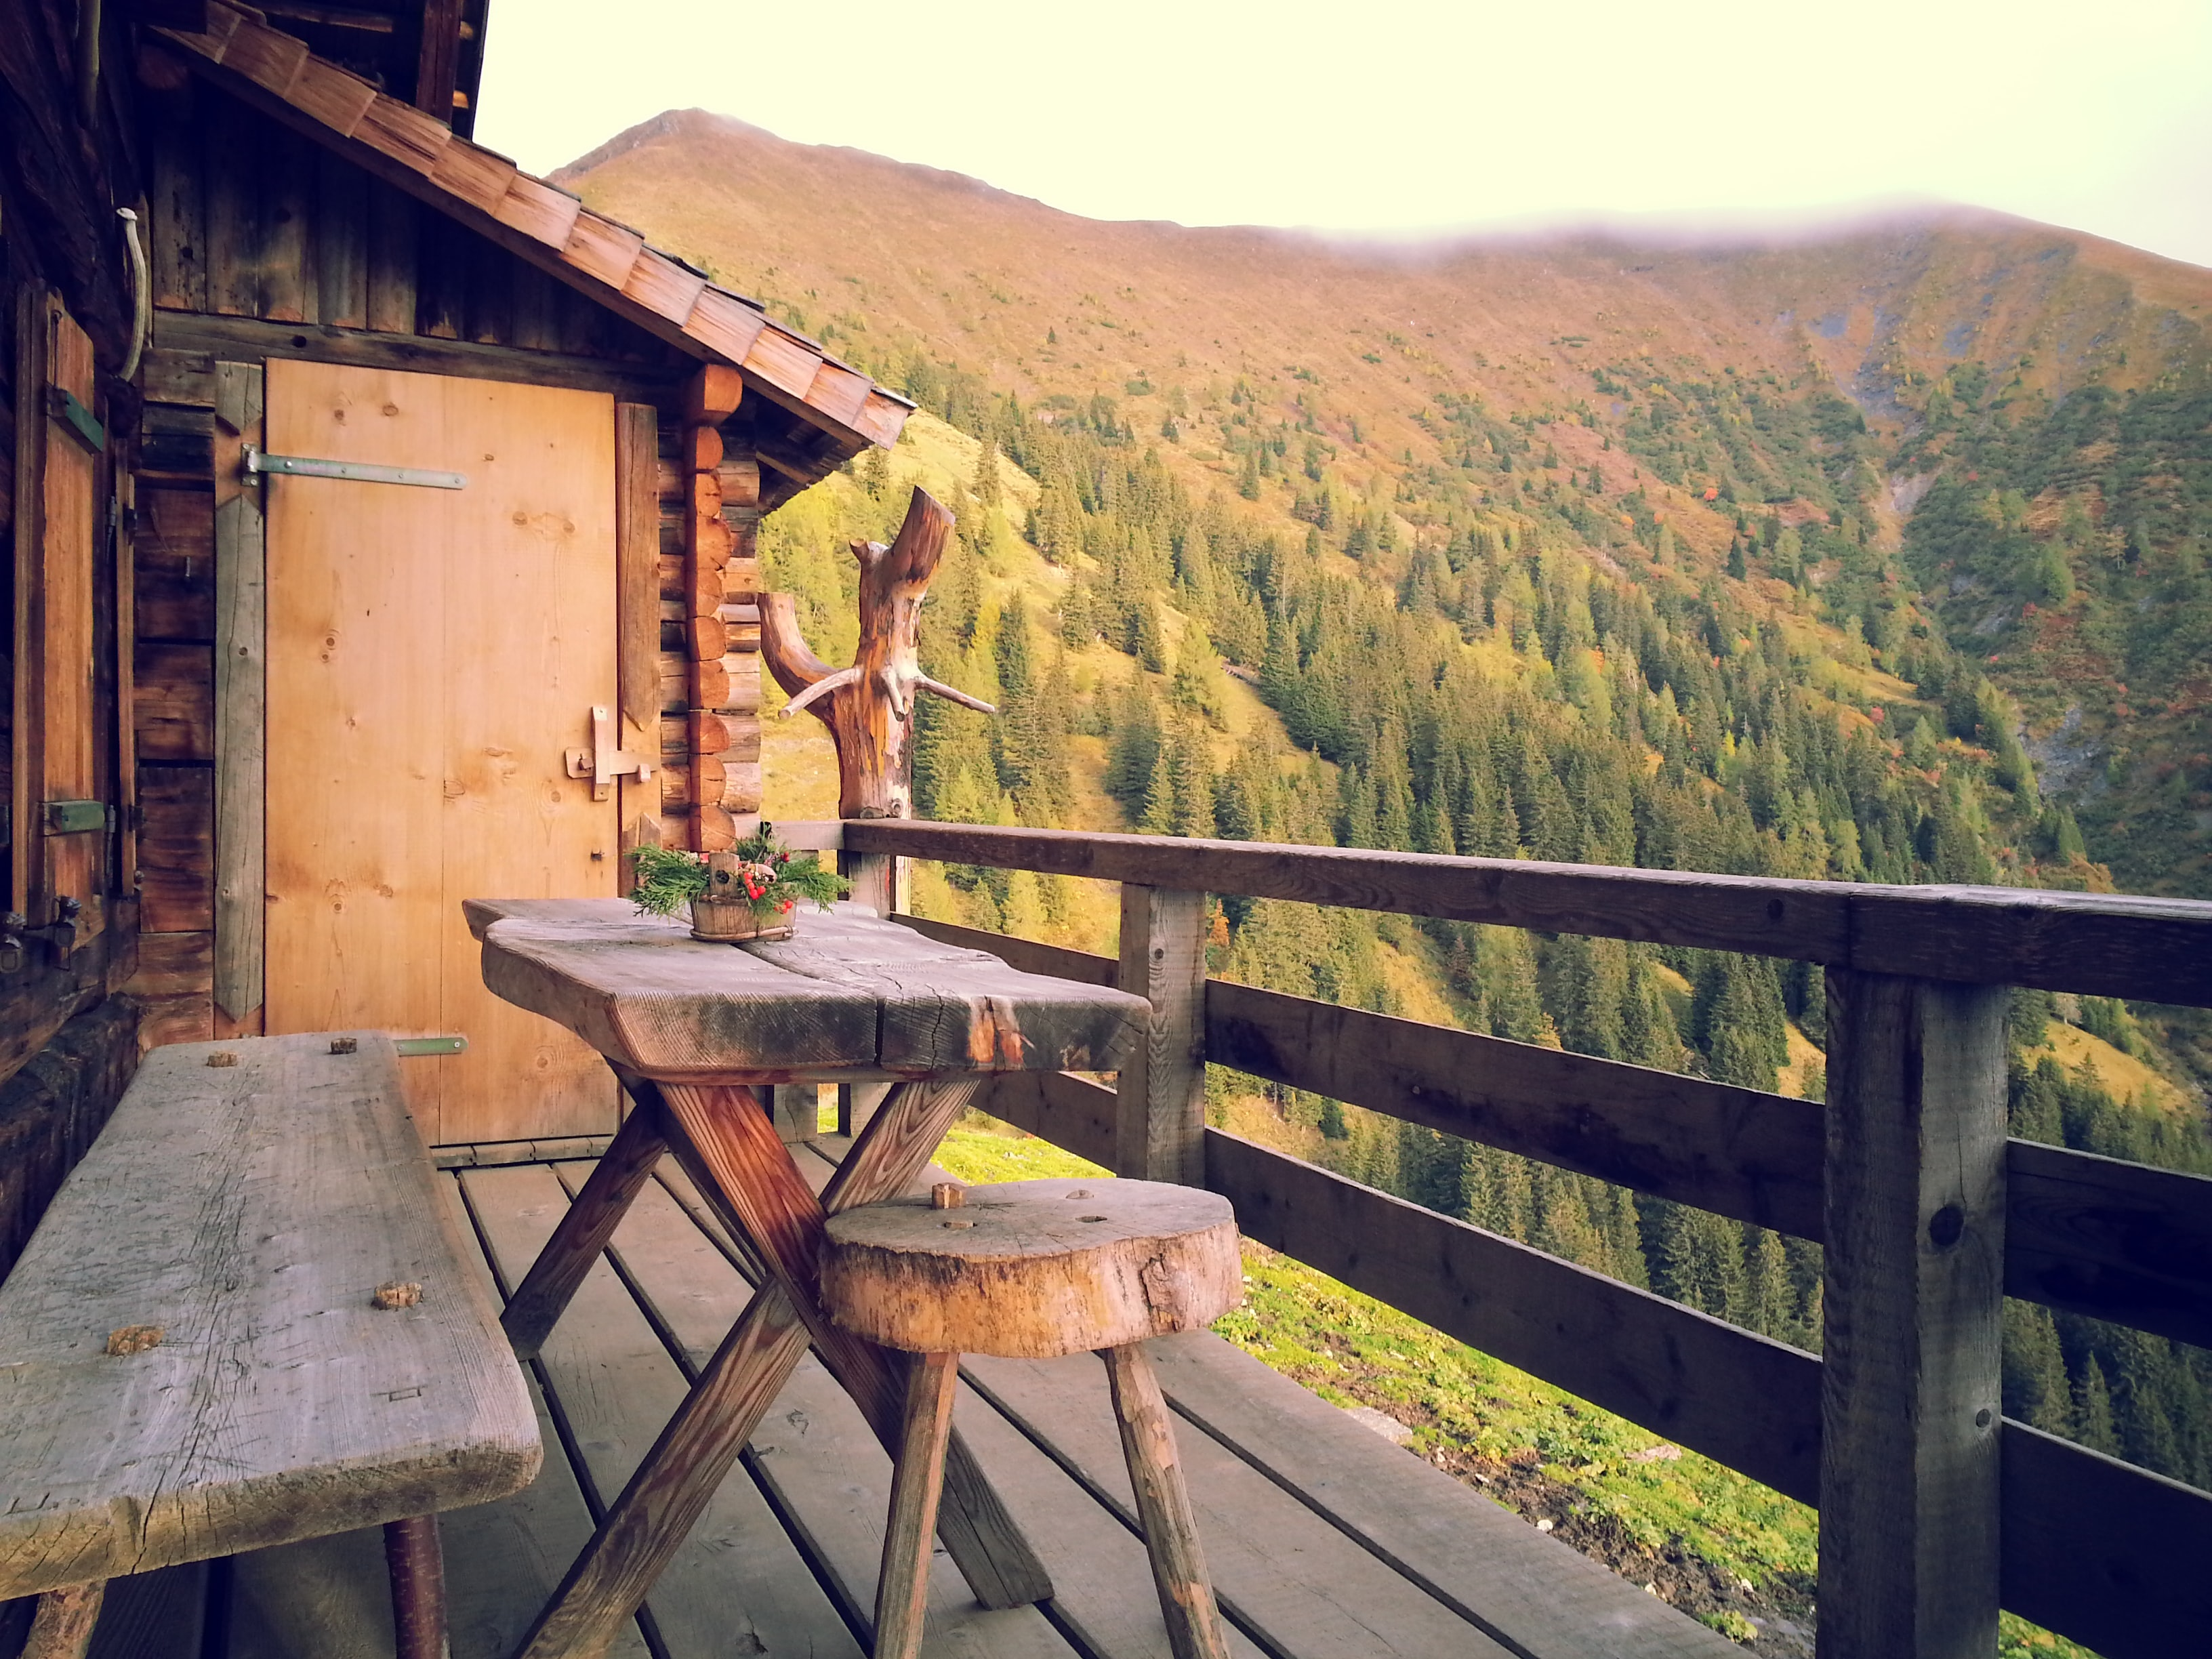 Table and chair on a cabin balcony overlooking the lush forest.